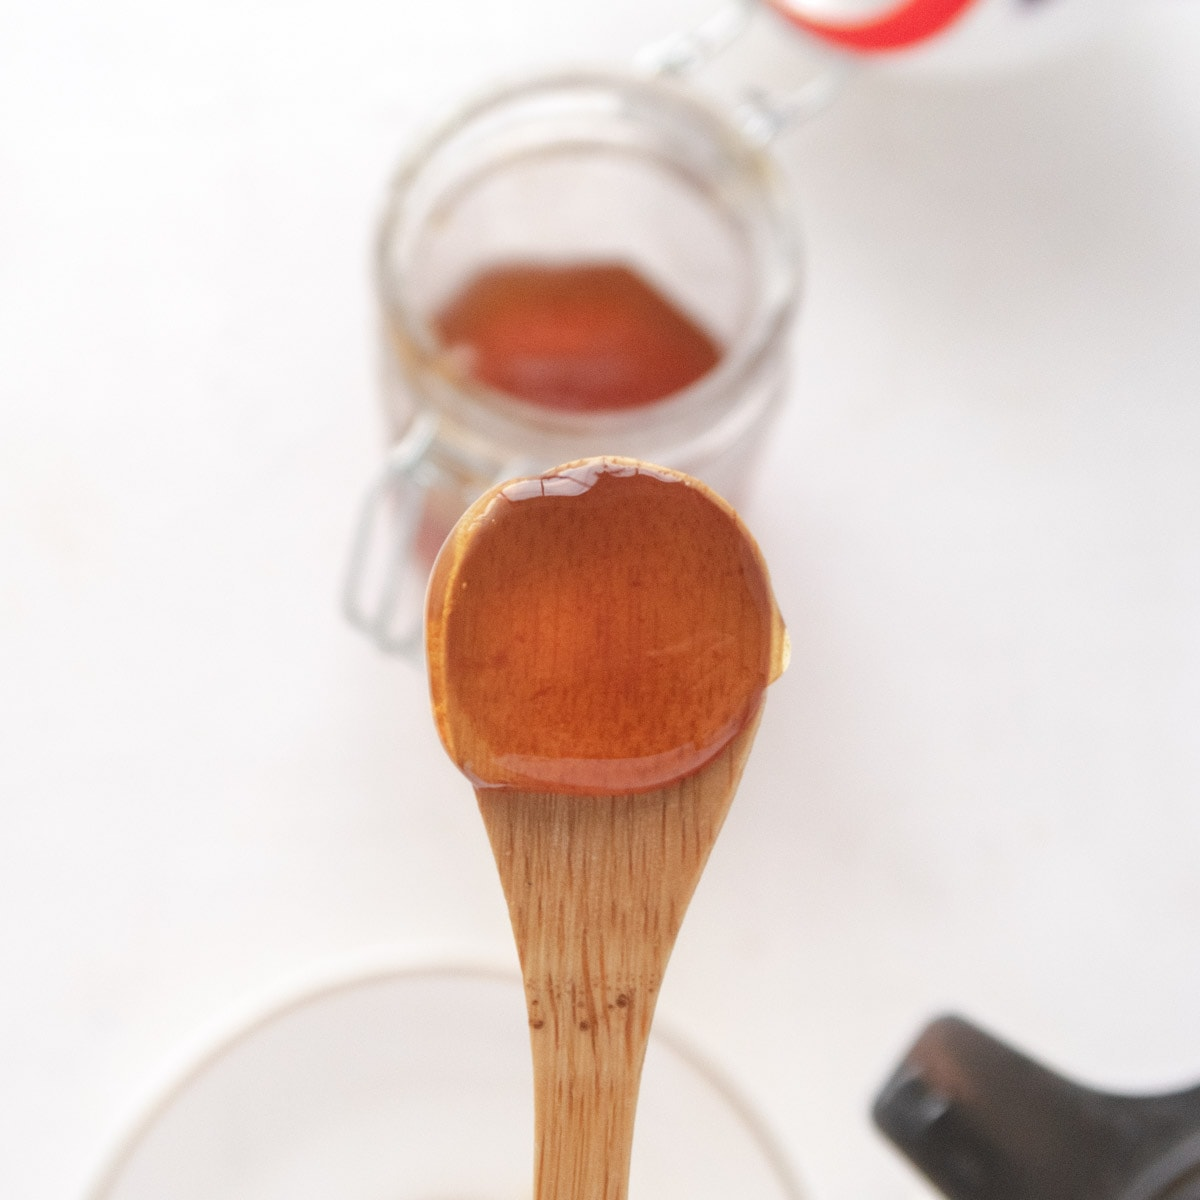 vegan honey on a bamboo spoon with the jar blurry in the backgorund